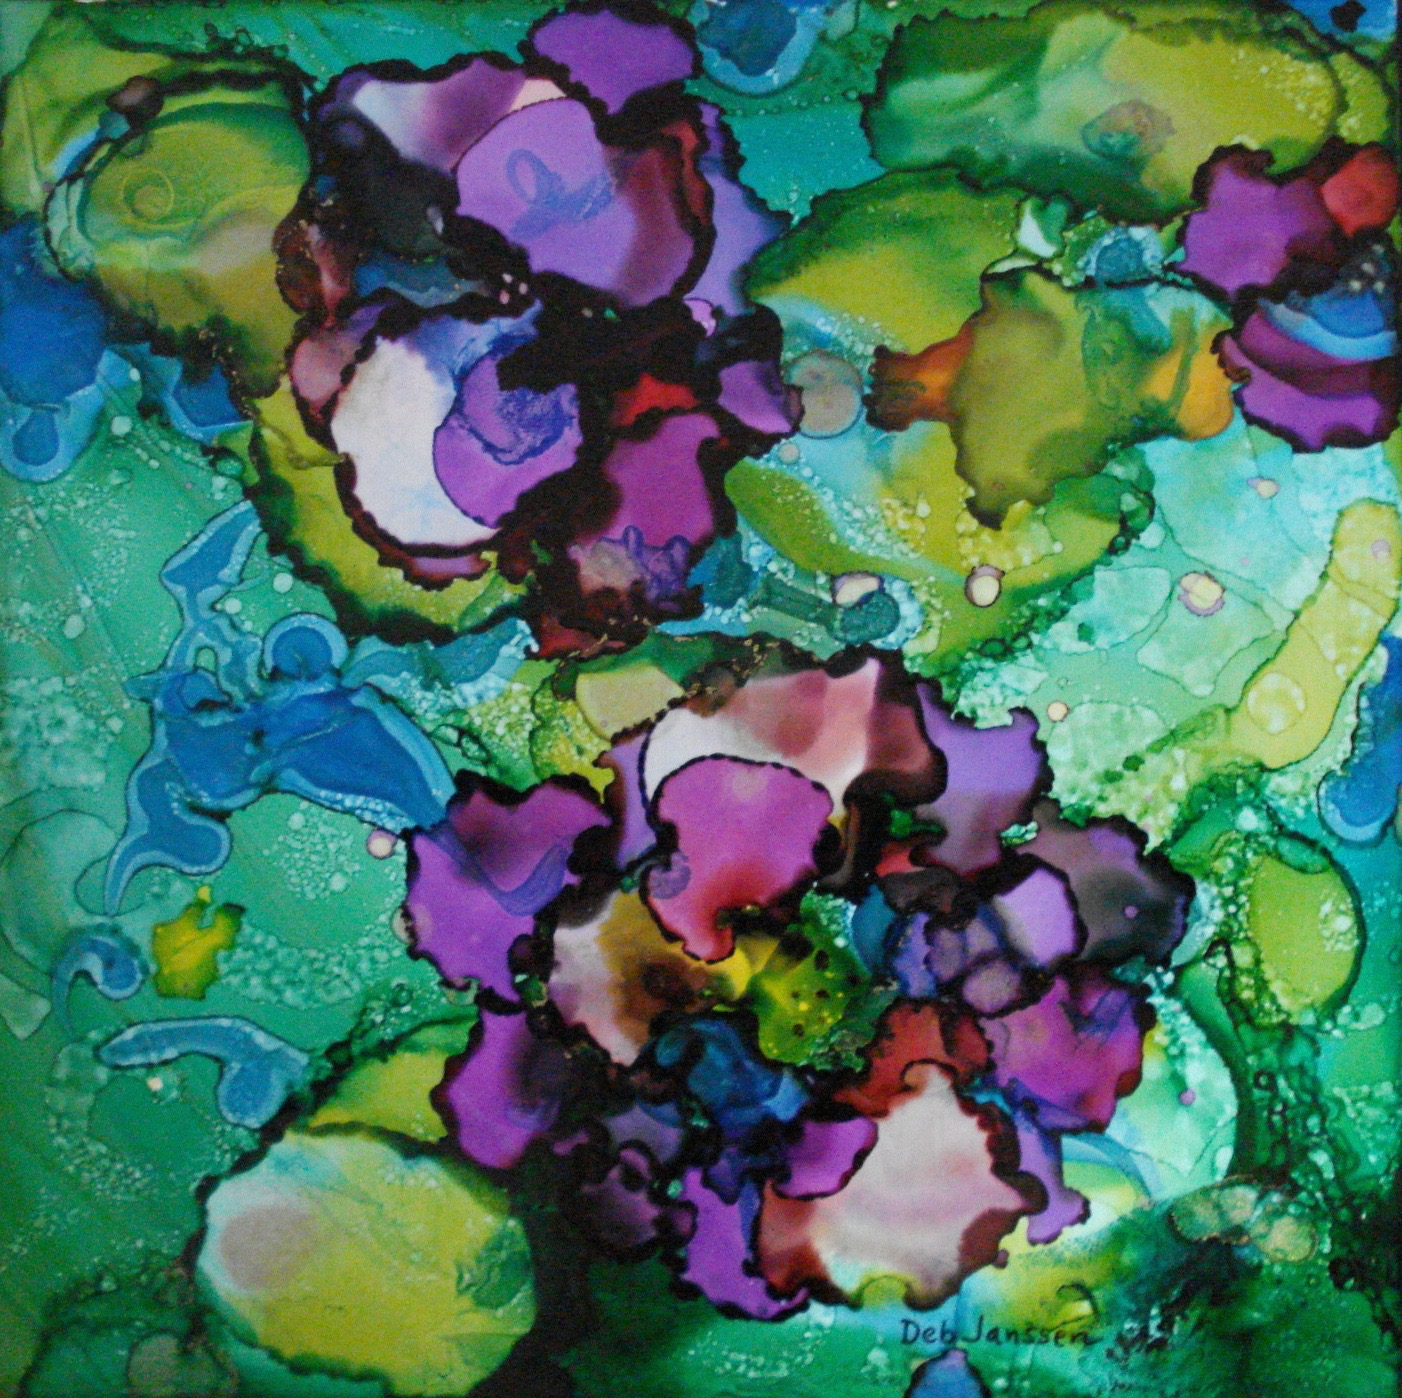 Encaustic Art, Alcohol Inks and Collage – Playful Art